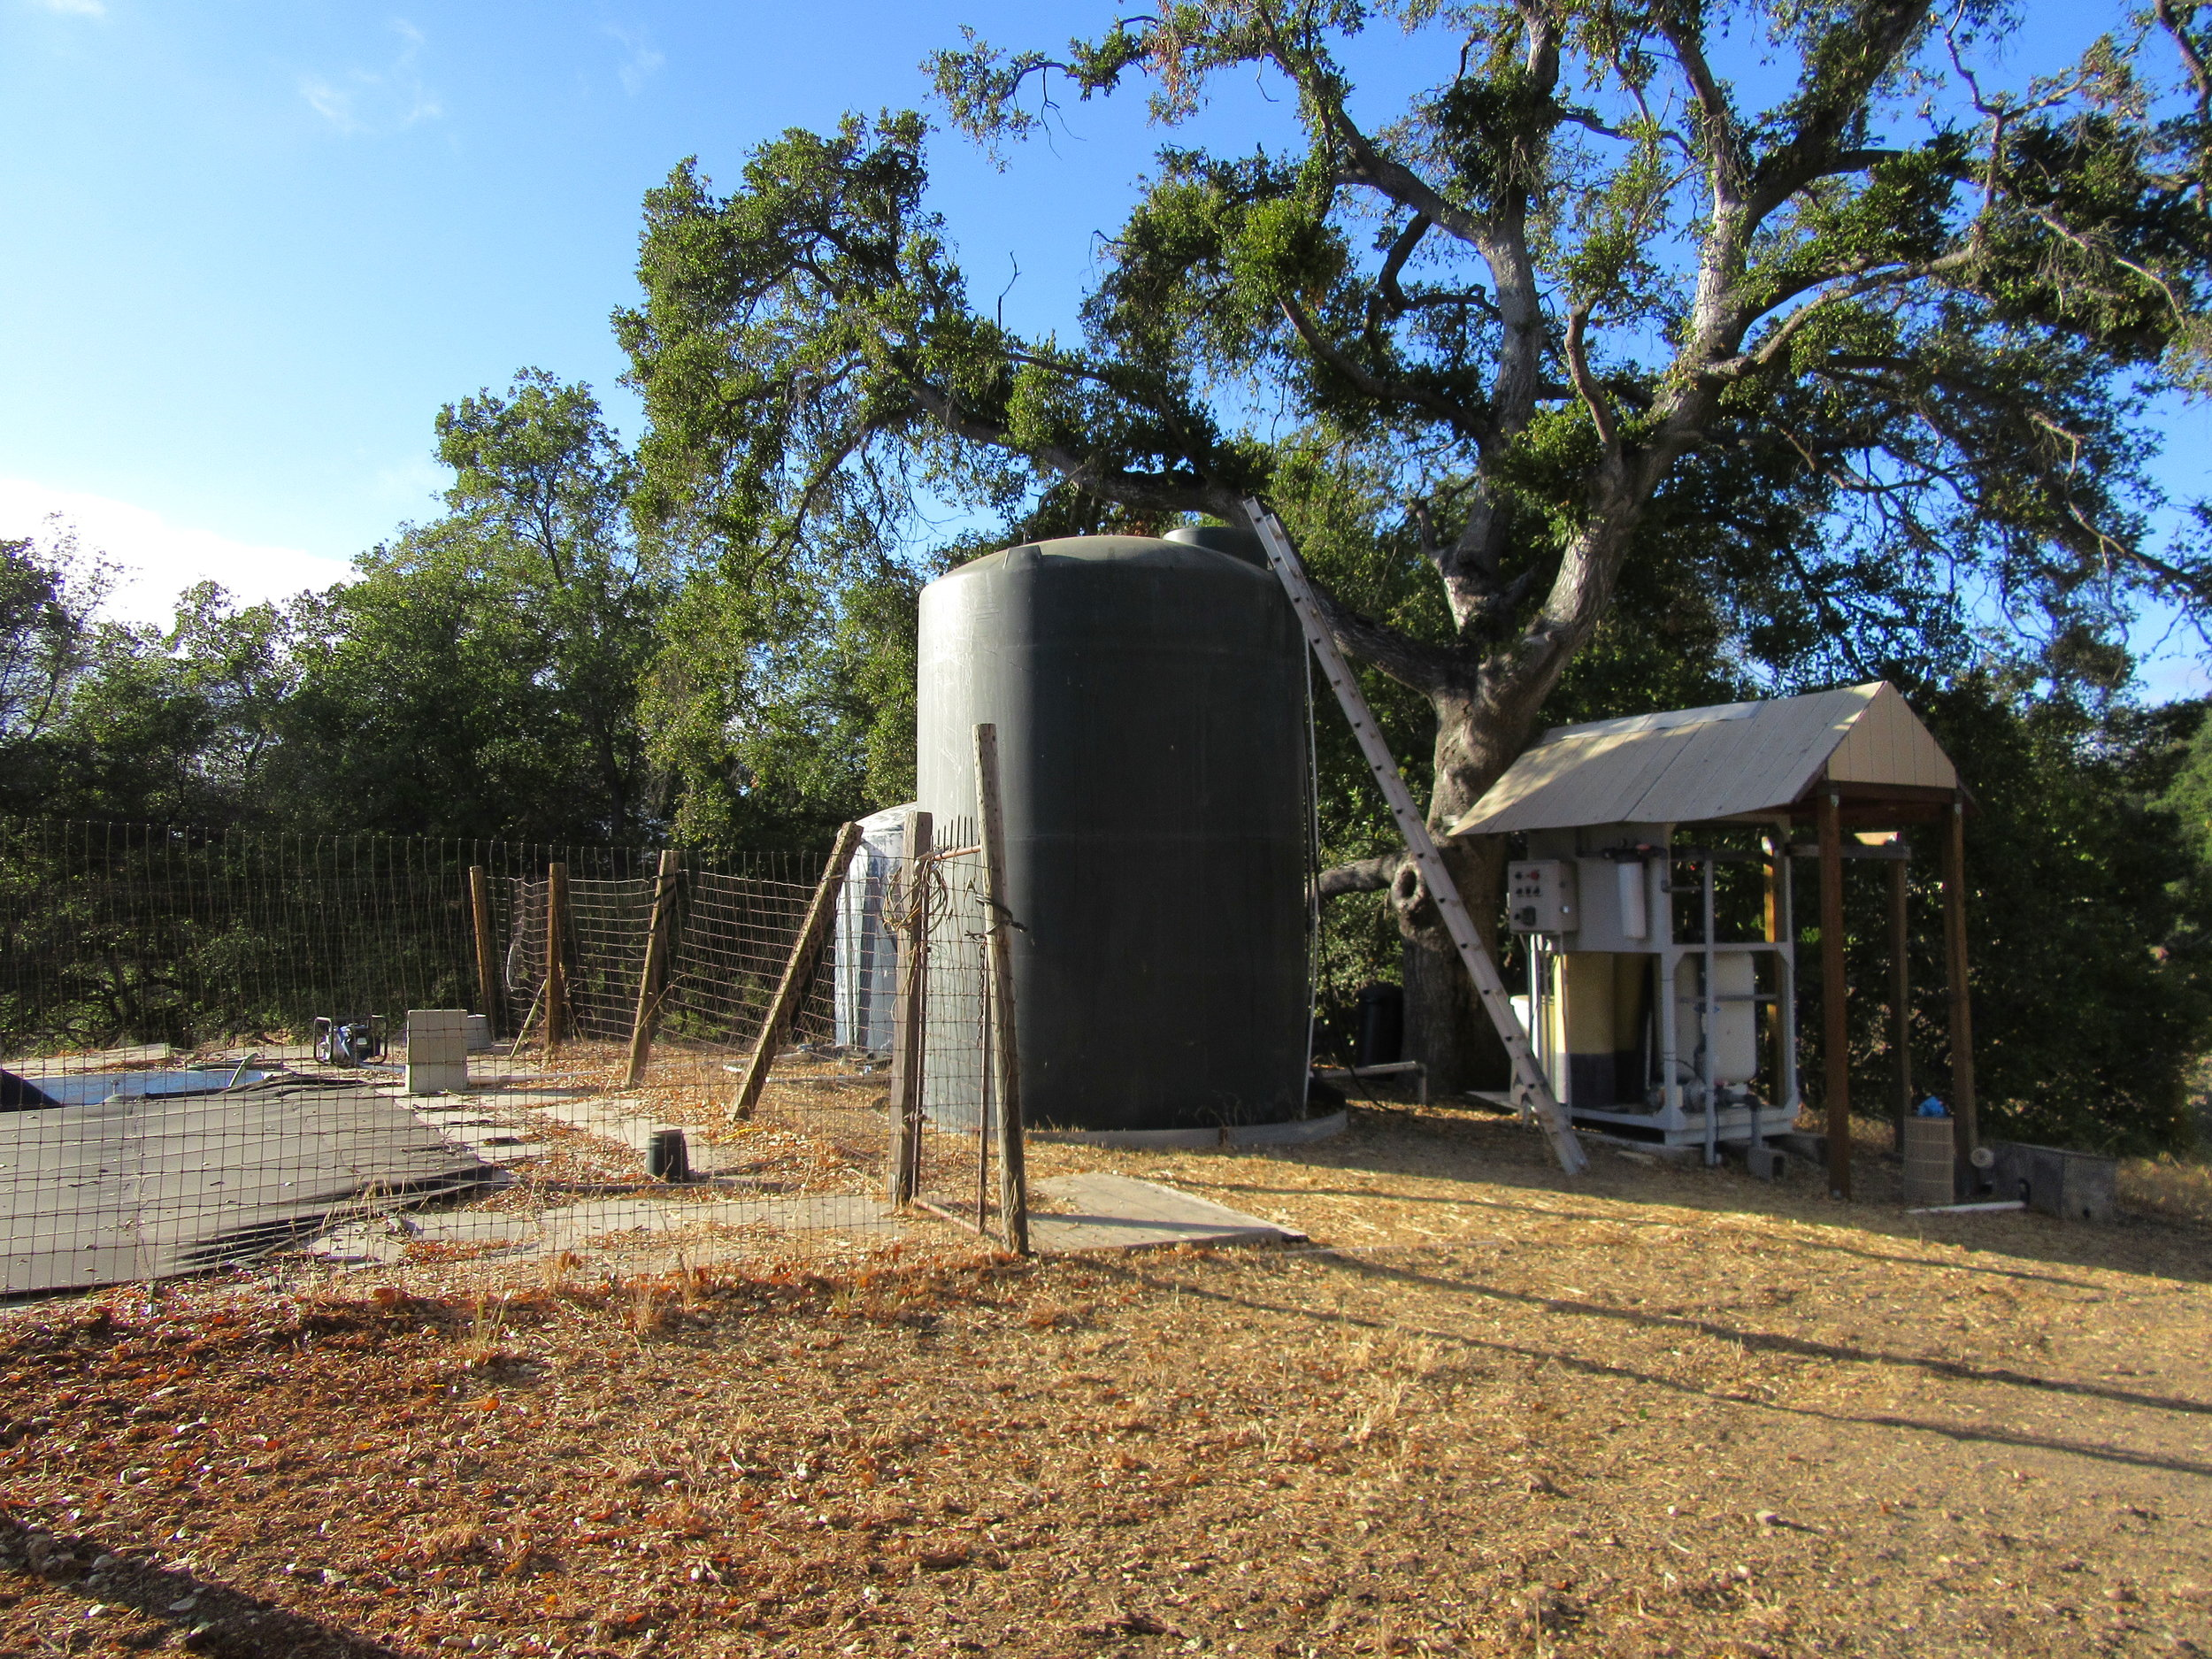 WATER TREATMENT SYSTEM - The former swimming pool, which acts as a reservoir for the water pumped from the well, is to the left enclosed by fencing. The large holding tank in front is for treated water. The smaller holding tank in back is for untreated agricultural water. The water treatment system is to the right. (Photo: Sam Ervin, 2016)